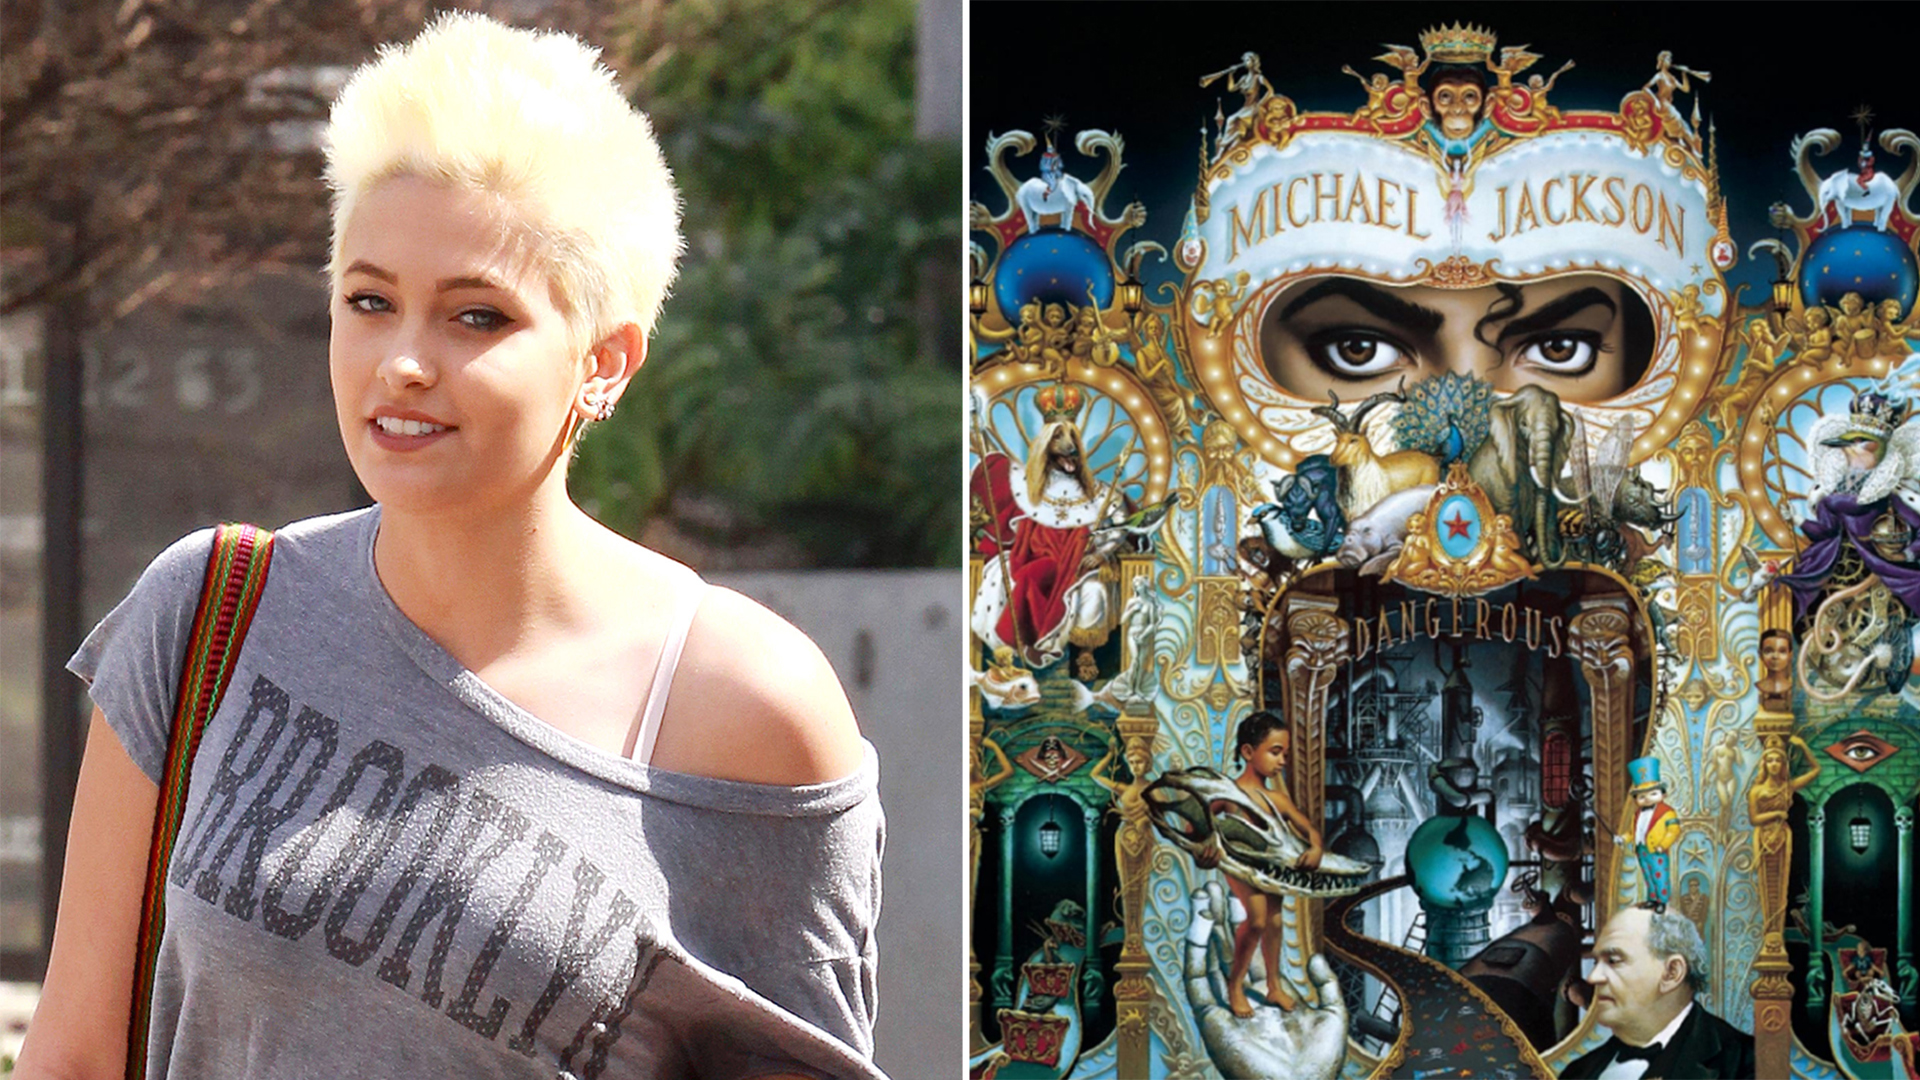 Michael Jacksons Daughter Gets Dangerous Tattoo In Honor Of Her - Michael jackson religion